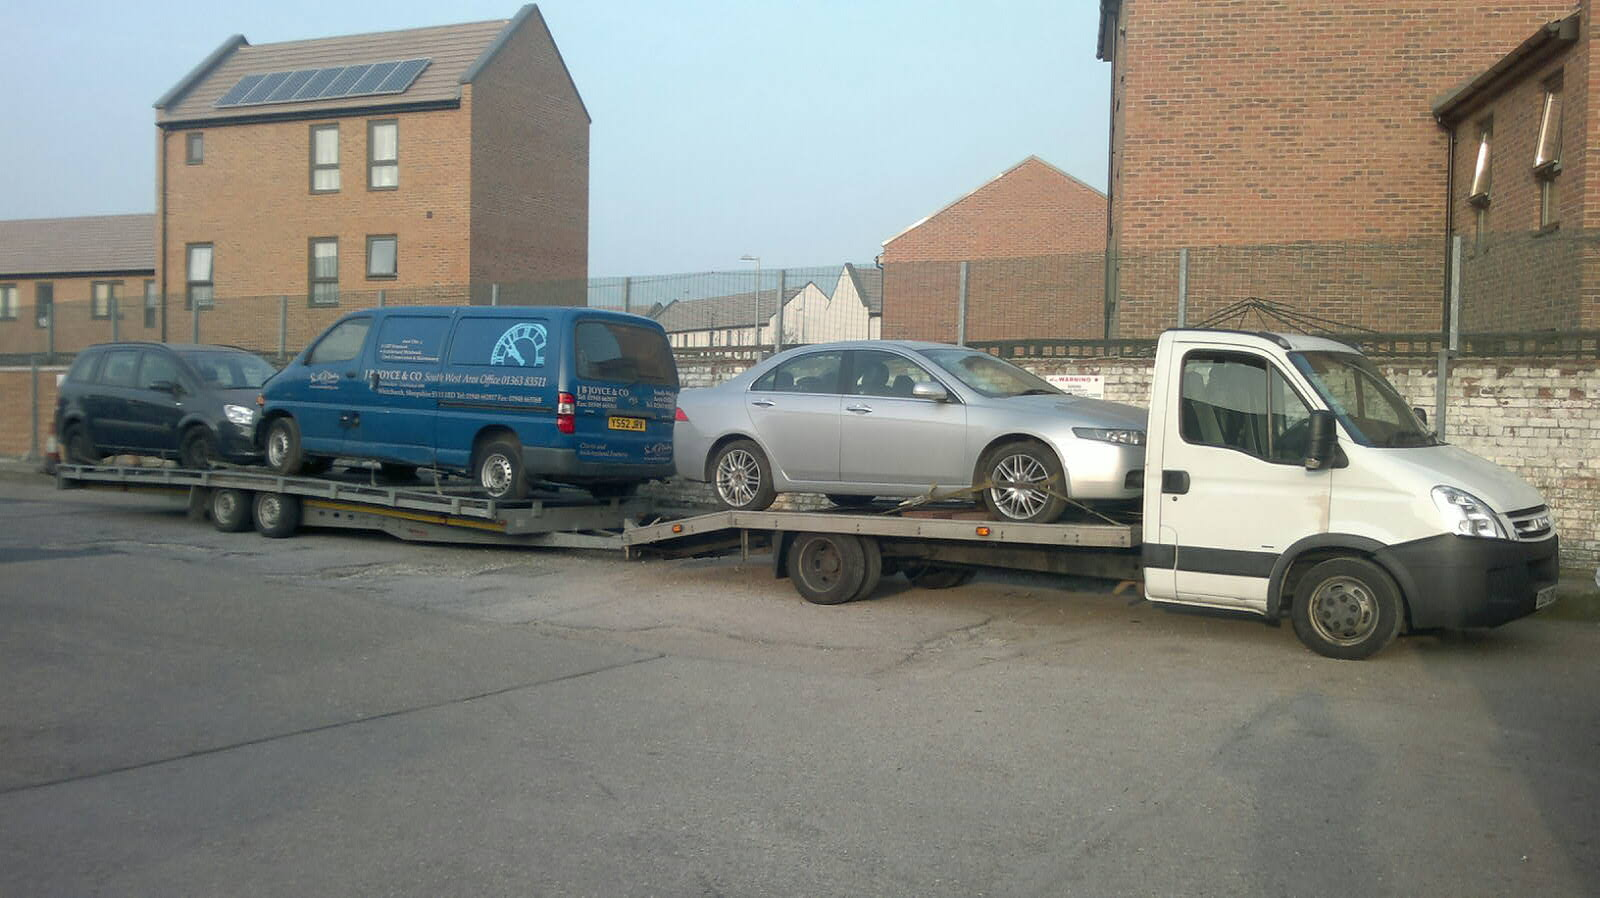 Breakdown Vehicle Recovery, Delivery and Logistics Services in London, UK and Europe